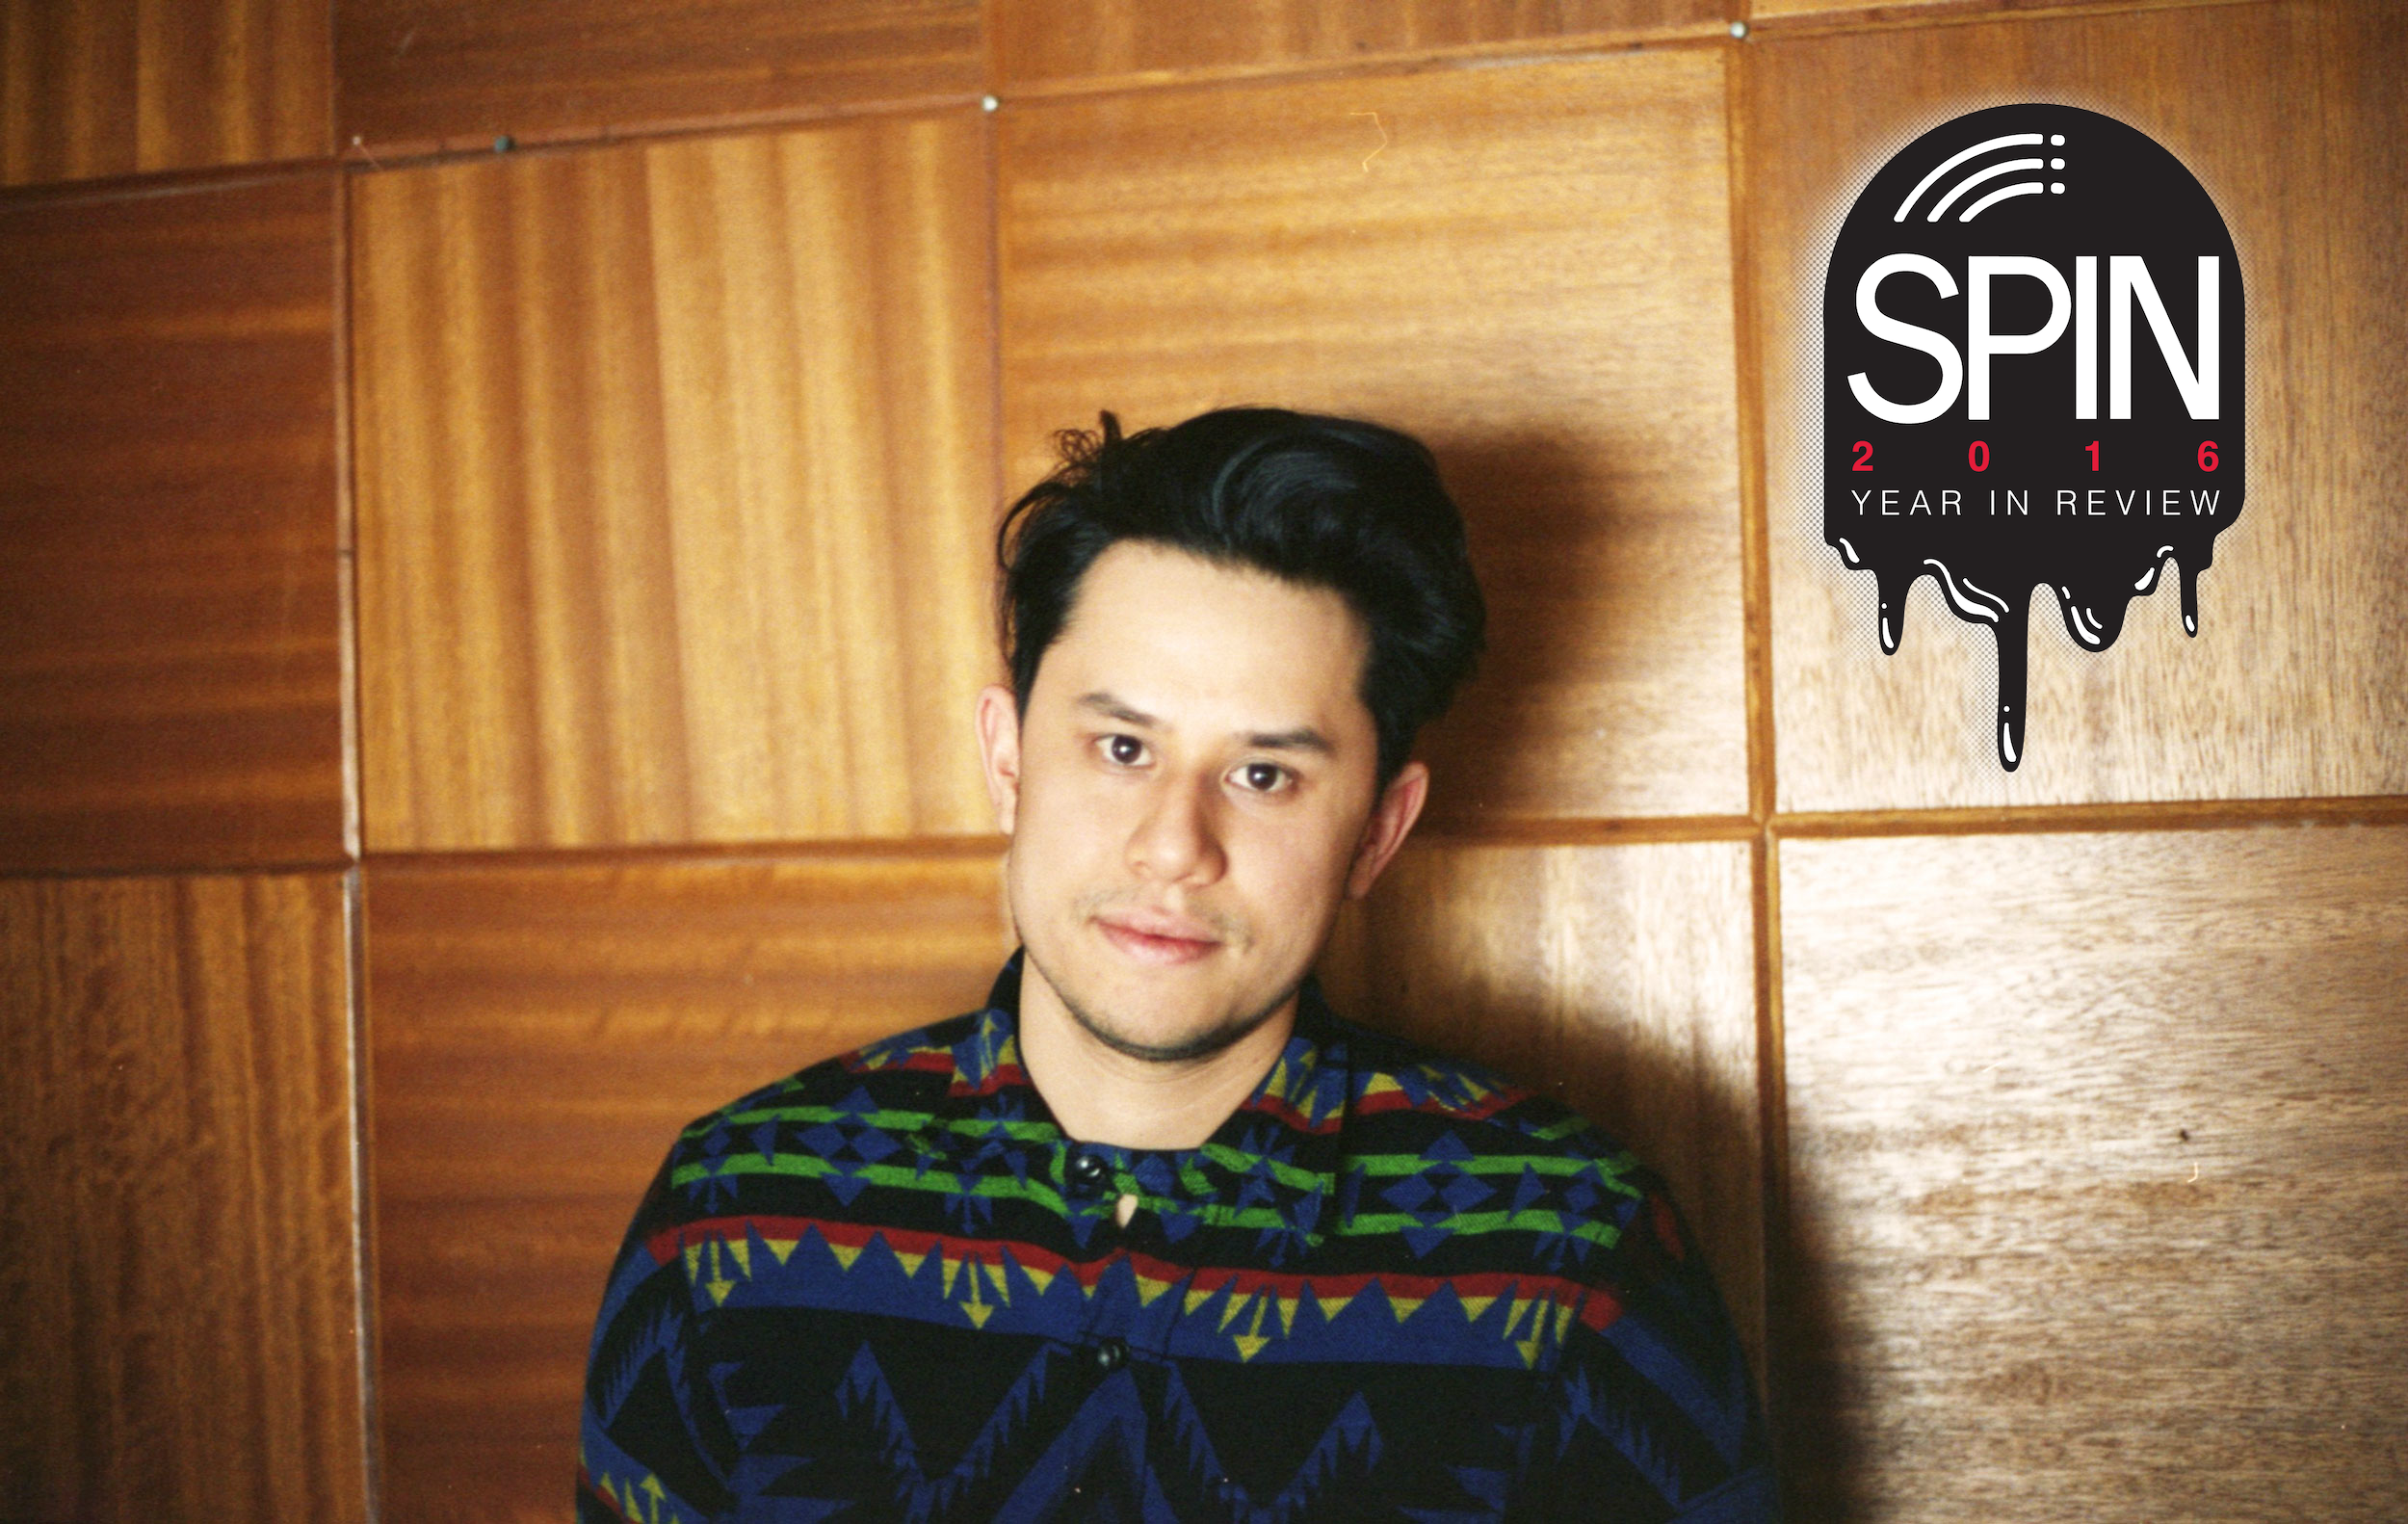 How Hitmaking Producer Frank Dukes Is Reinventing the Pop Music Machine